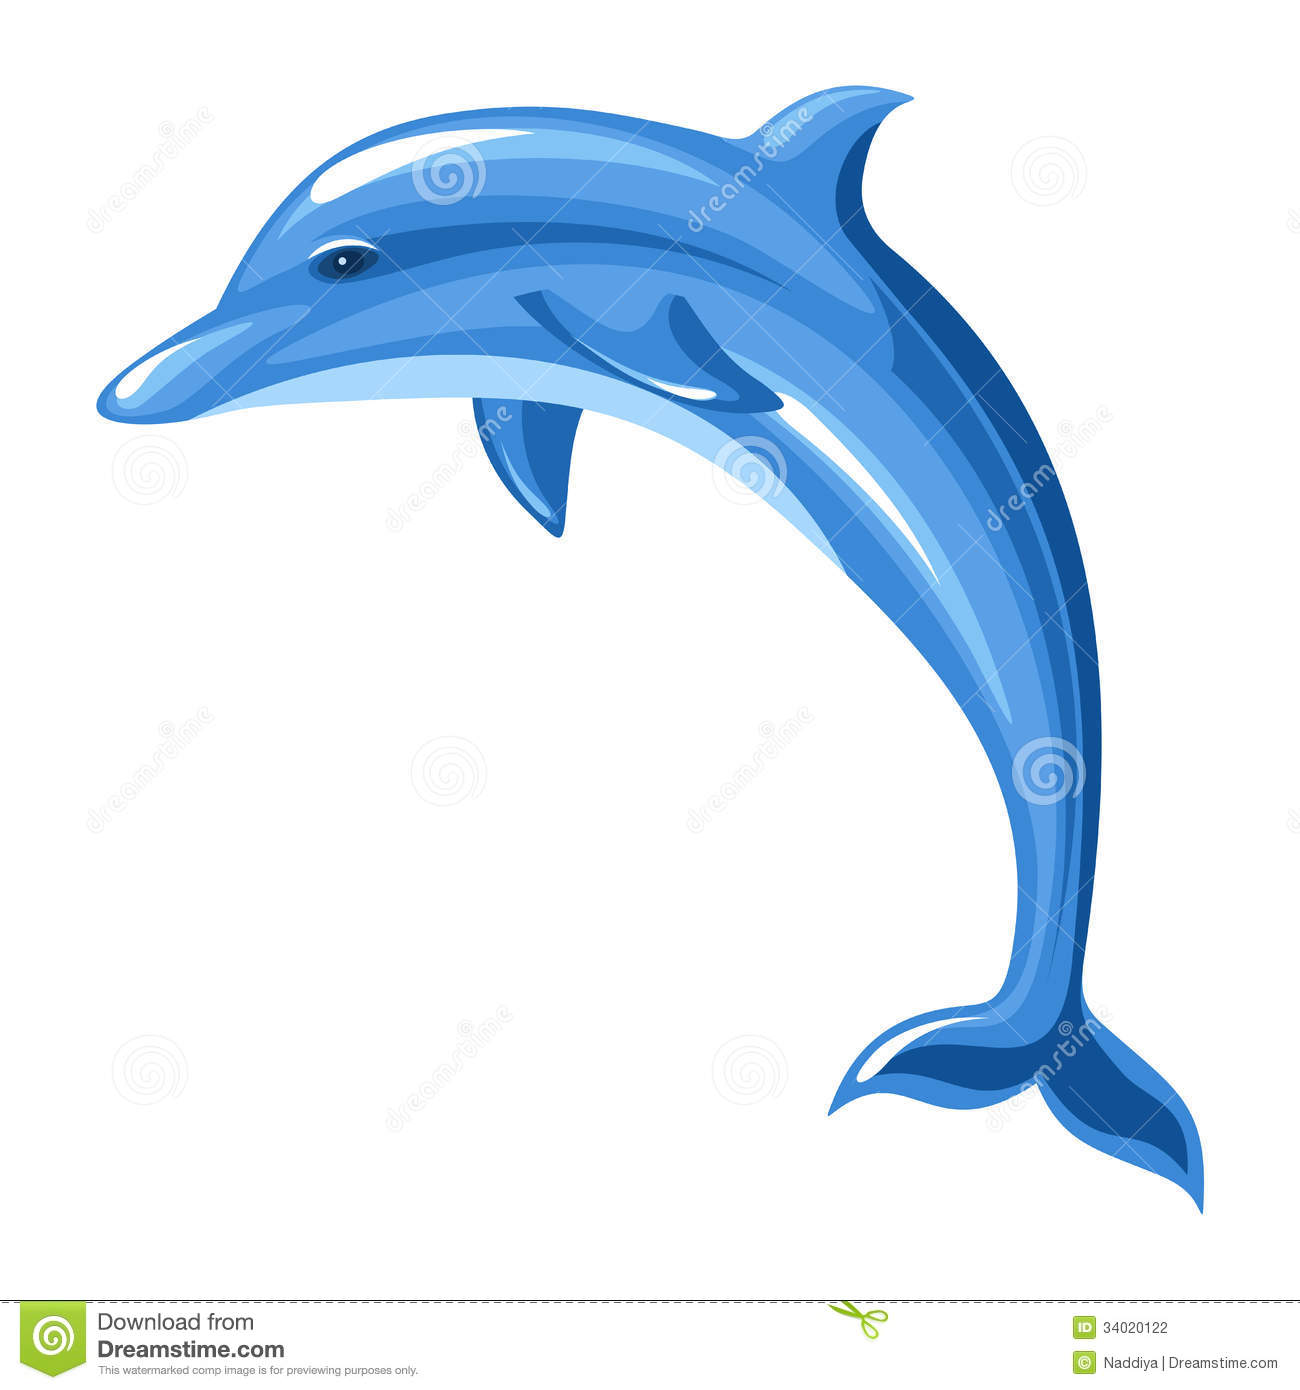 Illustration of blue dolphin isolated on a white background.